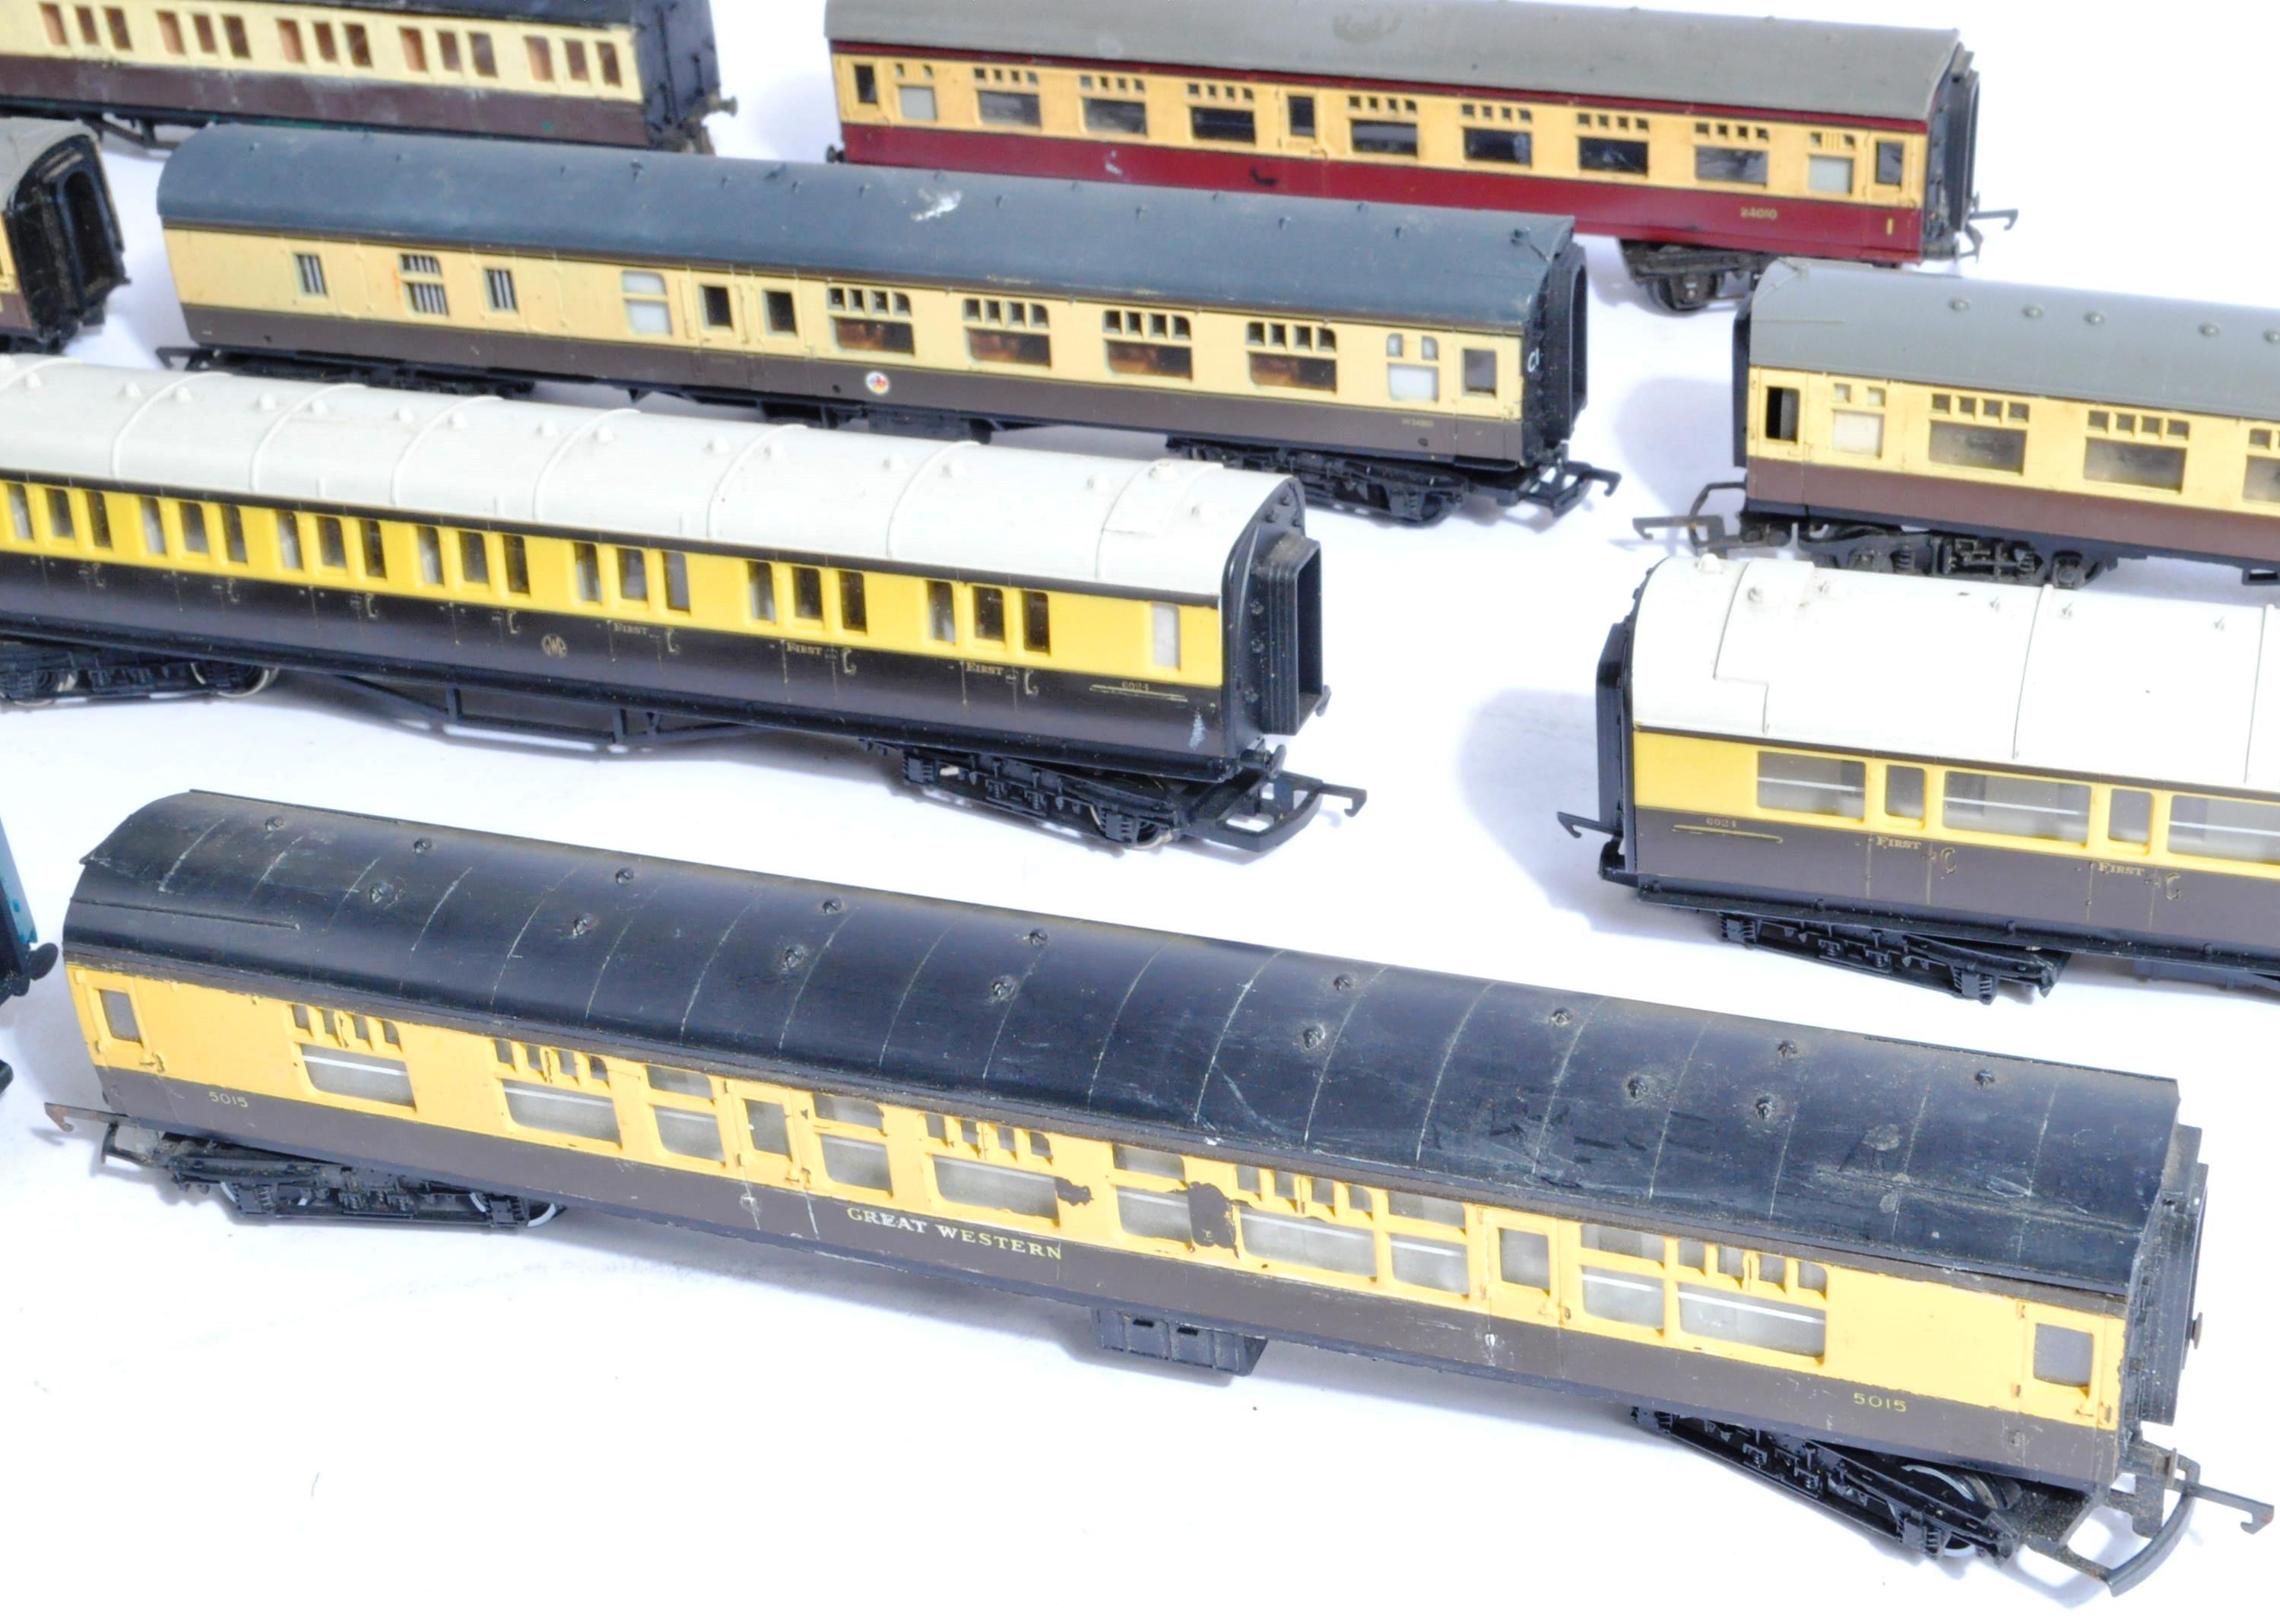 MODEL RAILWAYS - COLLECTION OF 00 GAUGE COACHES - Image 3 of 5